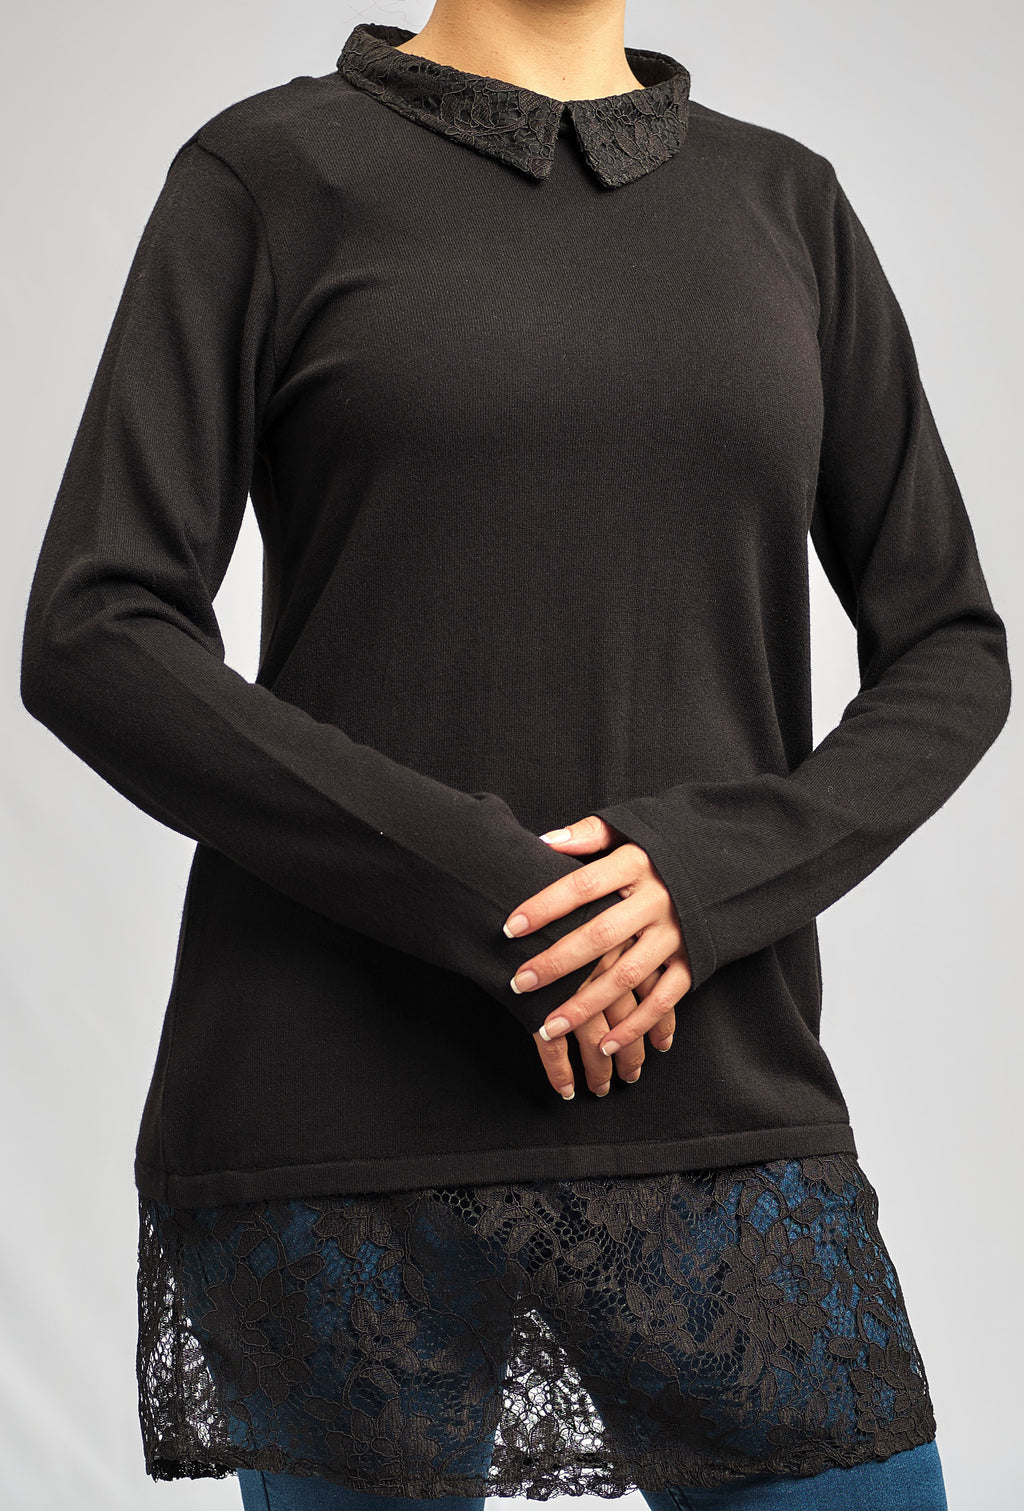 2 in 1 - CASHMERE FEEL COTTON KNITWEAR BLOUSE WITH A LUXURIOUS LACE COLLAR AND CUFFS